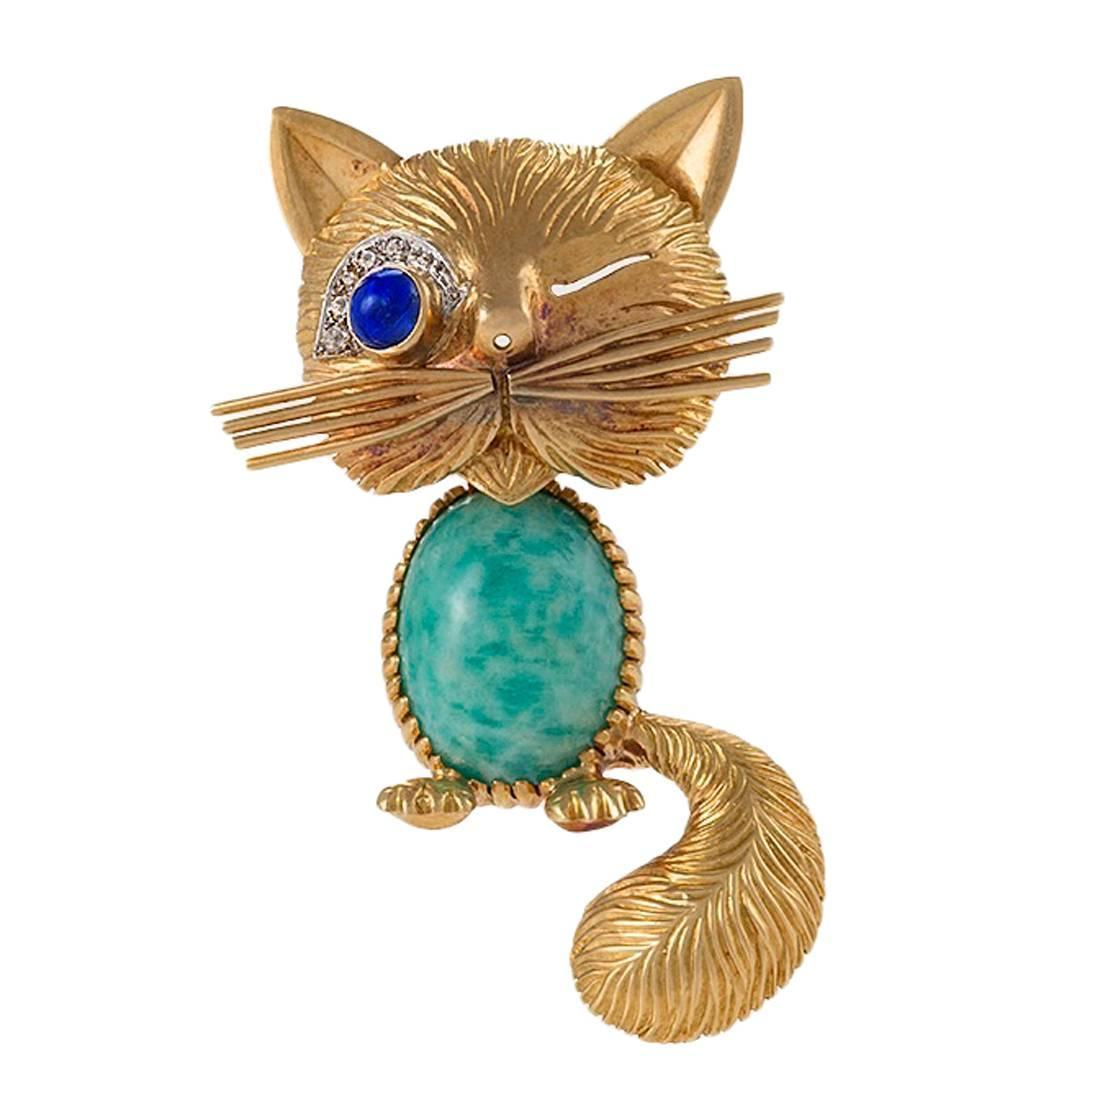 Yafa signed jewels new york ny 1stdibs page 4 - Van Cleef And Arpels Paris Turquoise Diamond Blue Sapphire And Gold Cat Brooch For Sale At 1stdibs